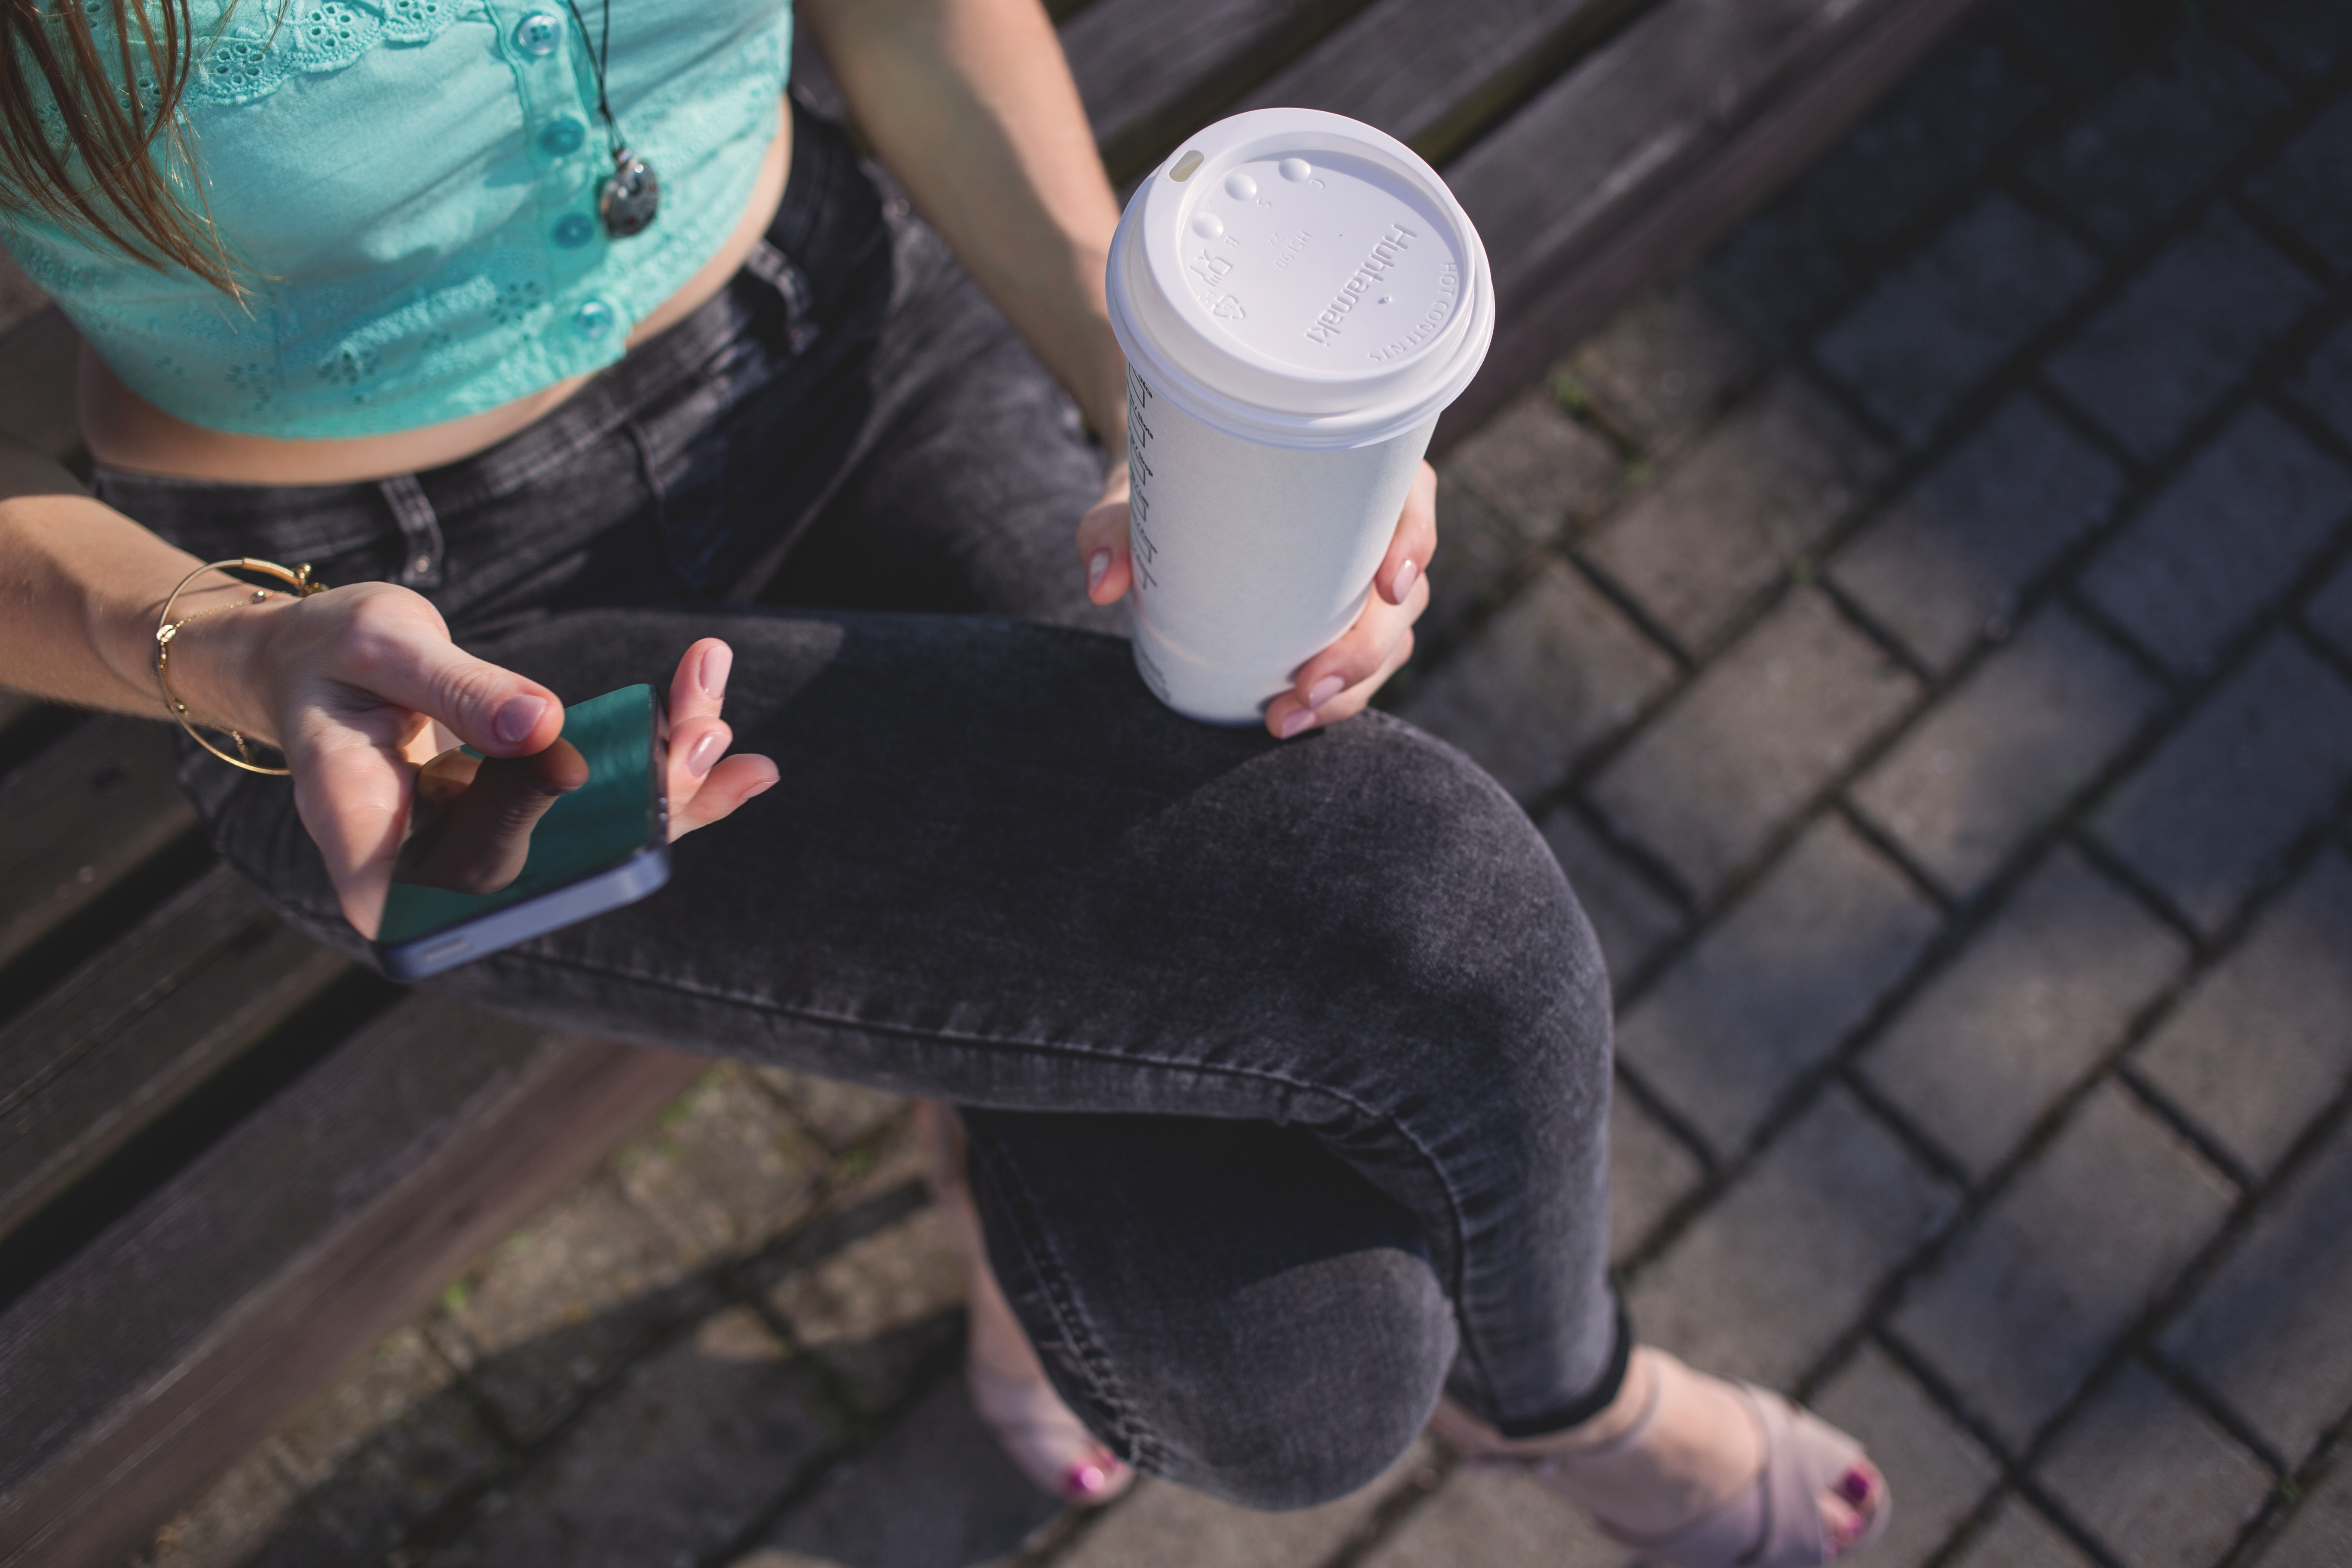 Woman holding white disposable cup and smartphone photo